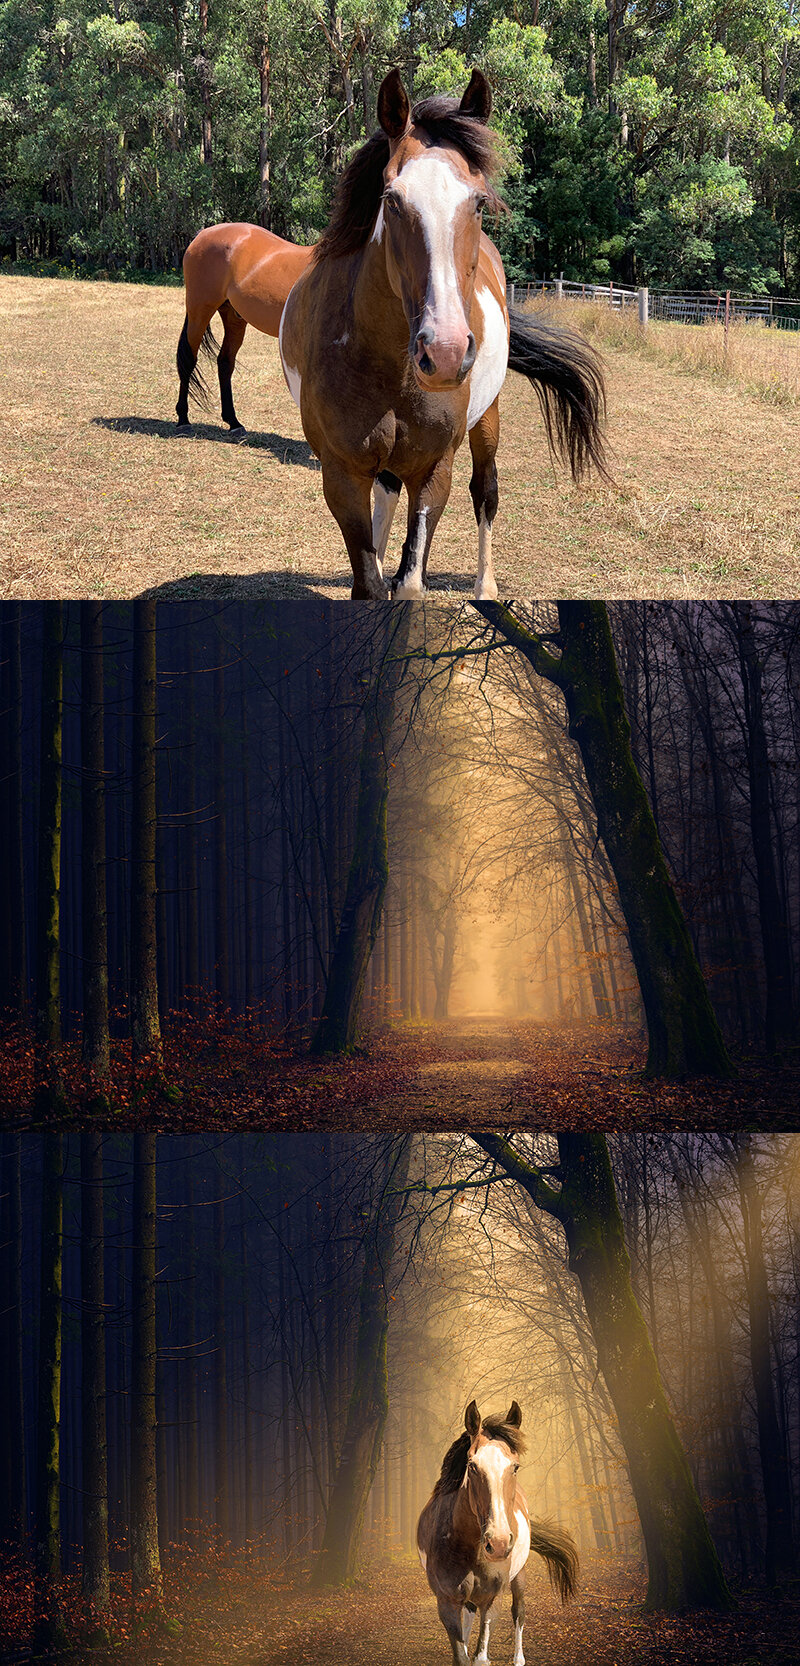 Bottom image was created by combining client's top image with a stock photo (by Johannes Plenio) and adding a shaft of light to work with the existing lighting on the horse.